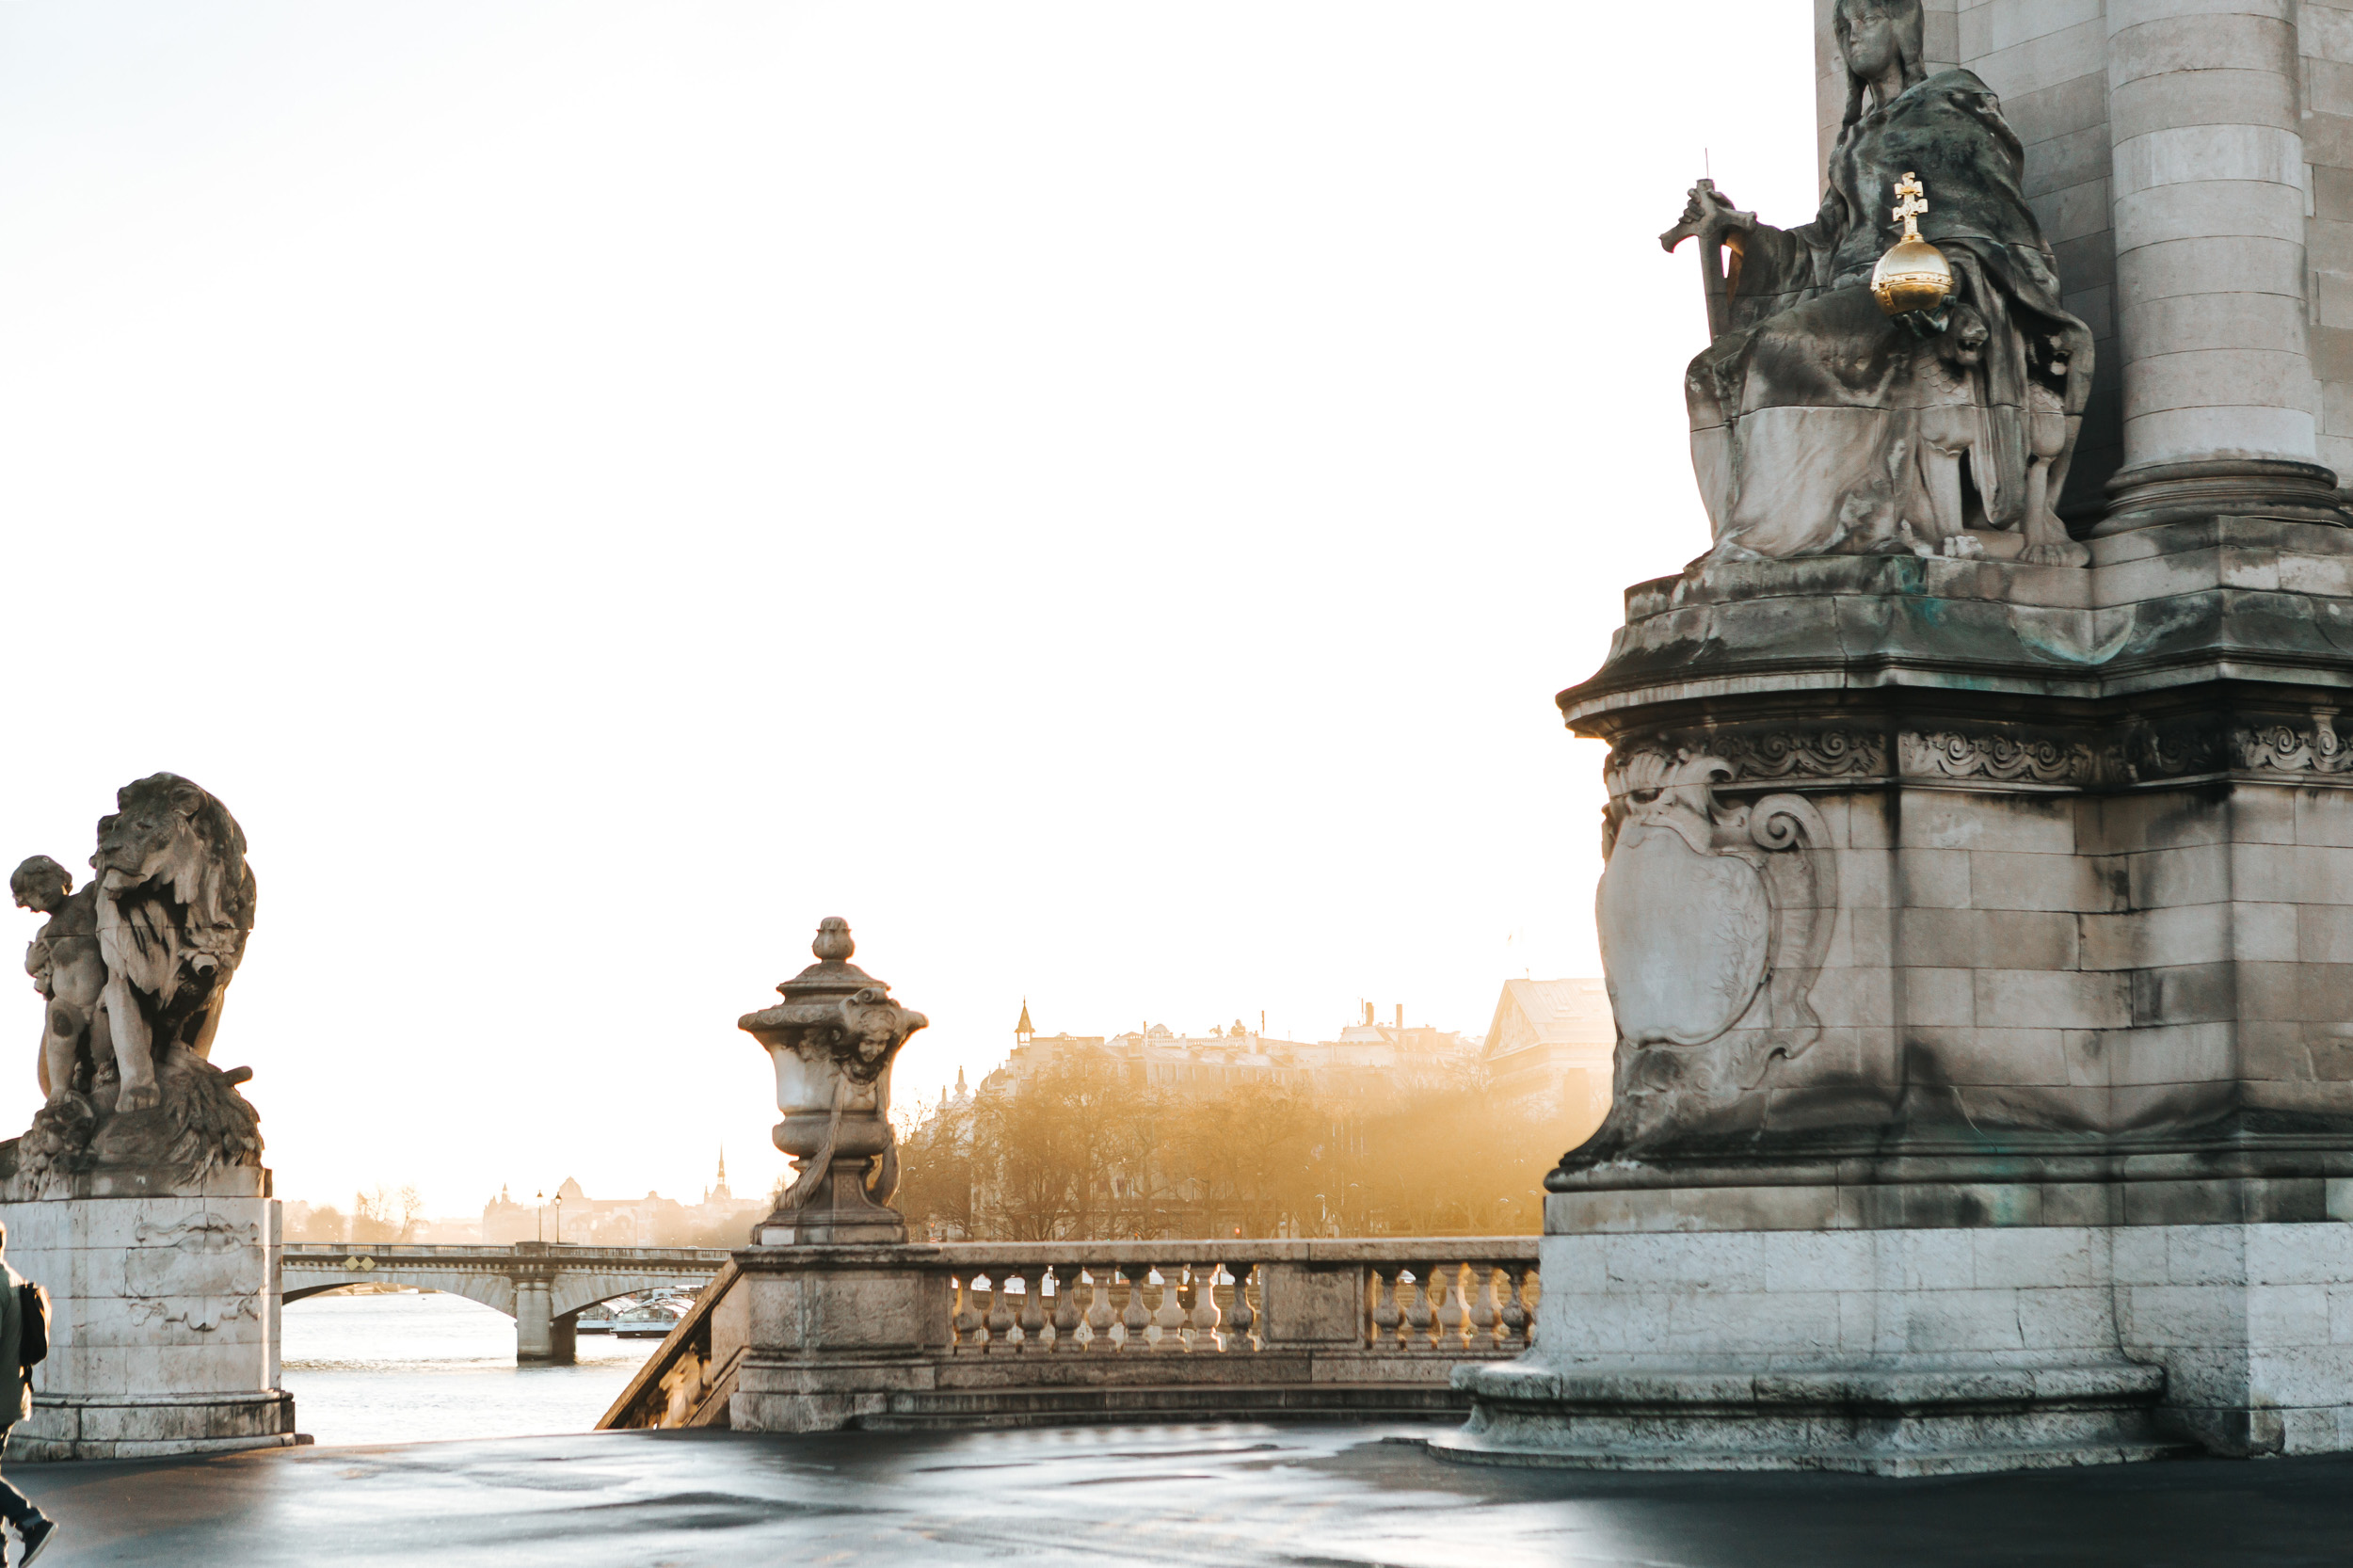 Sunrise view of Pont Alexandre III captured by Paris Photographer Federico Guendel IheartParis www.iheartparis.fr